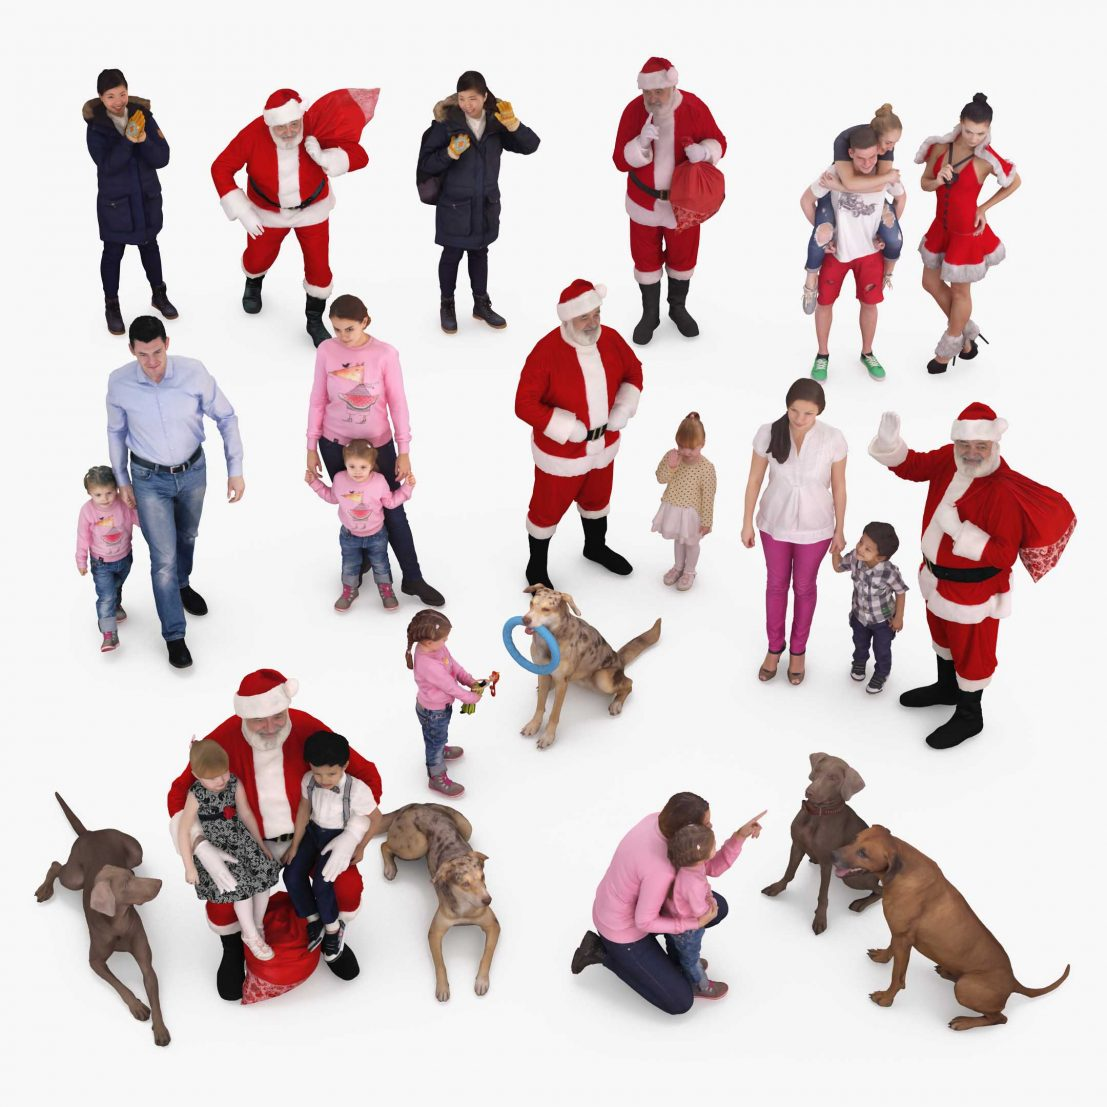 Holiday People x20 3D Models | powered by 3D Scanning Studio 3DTree